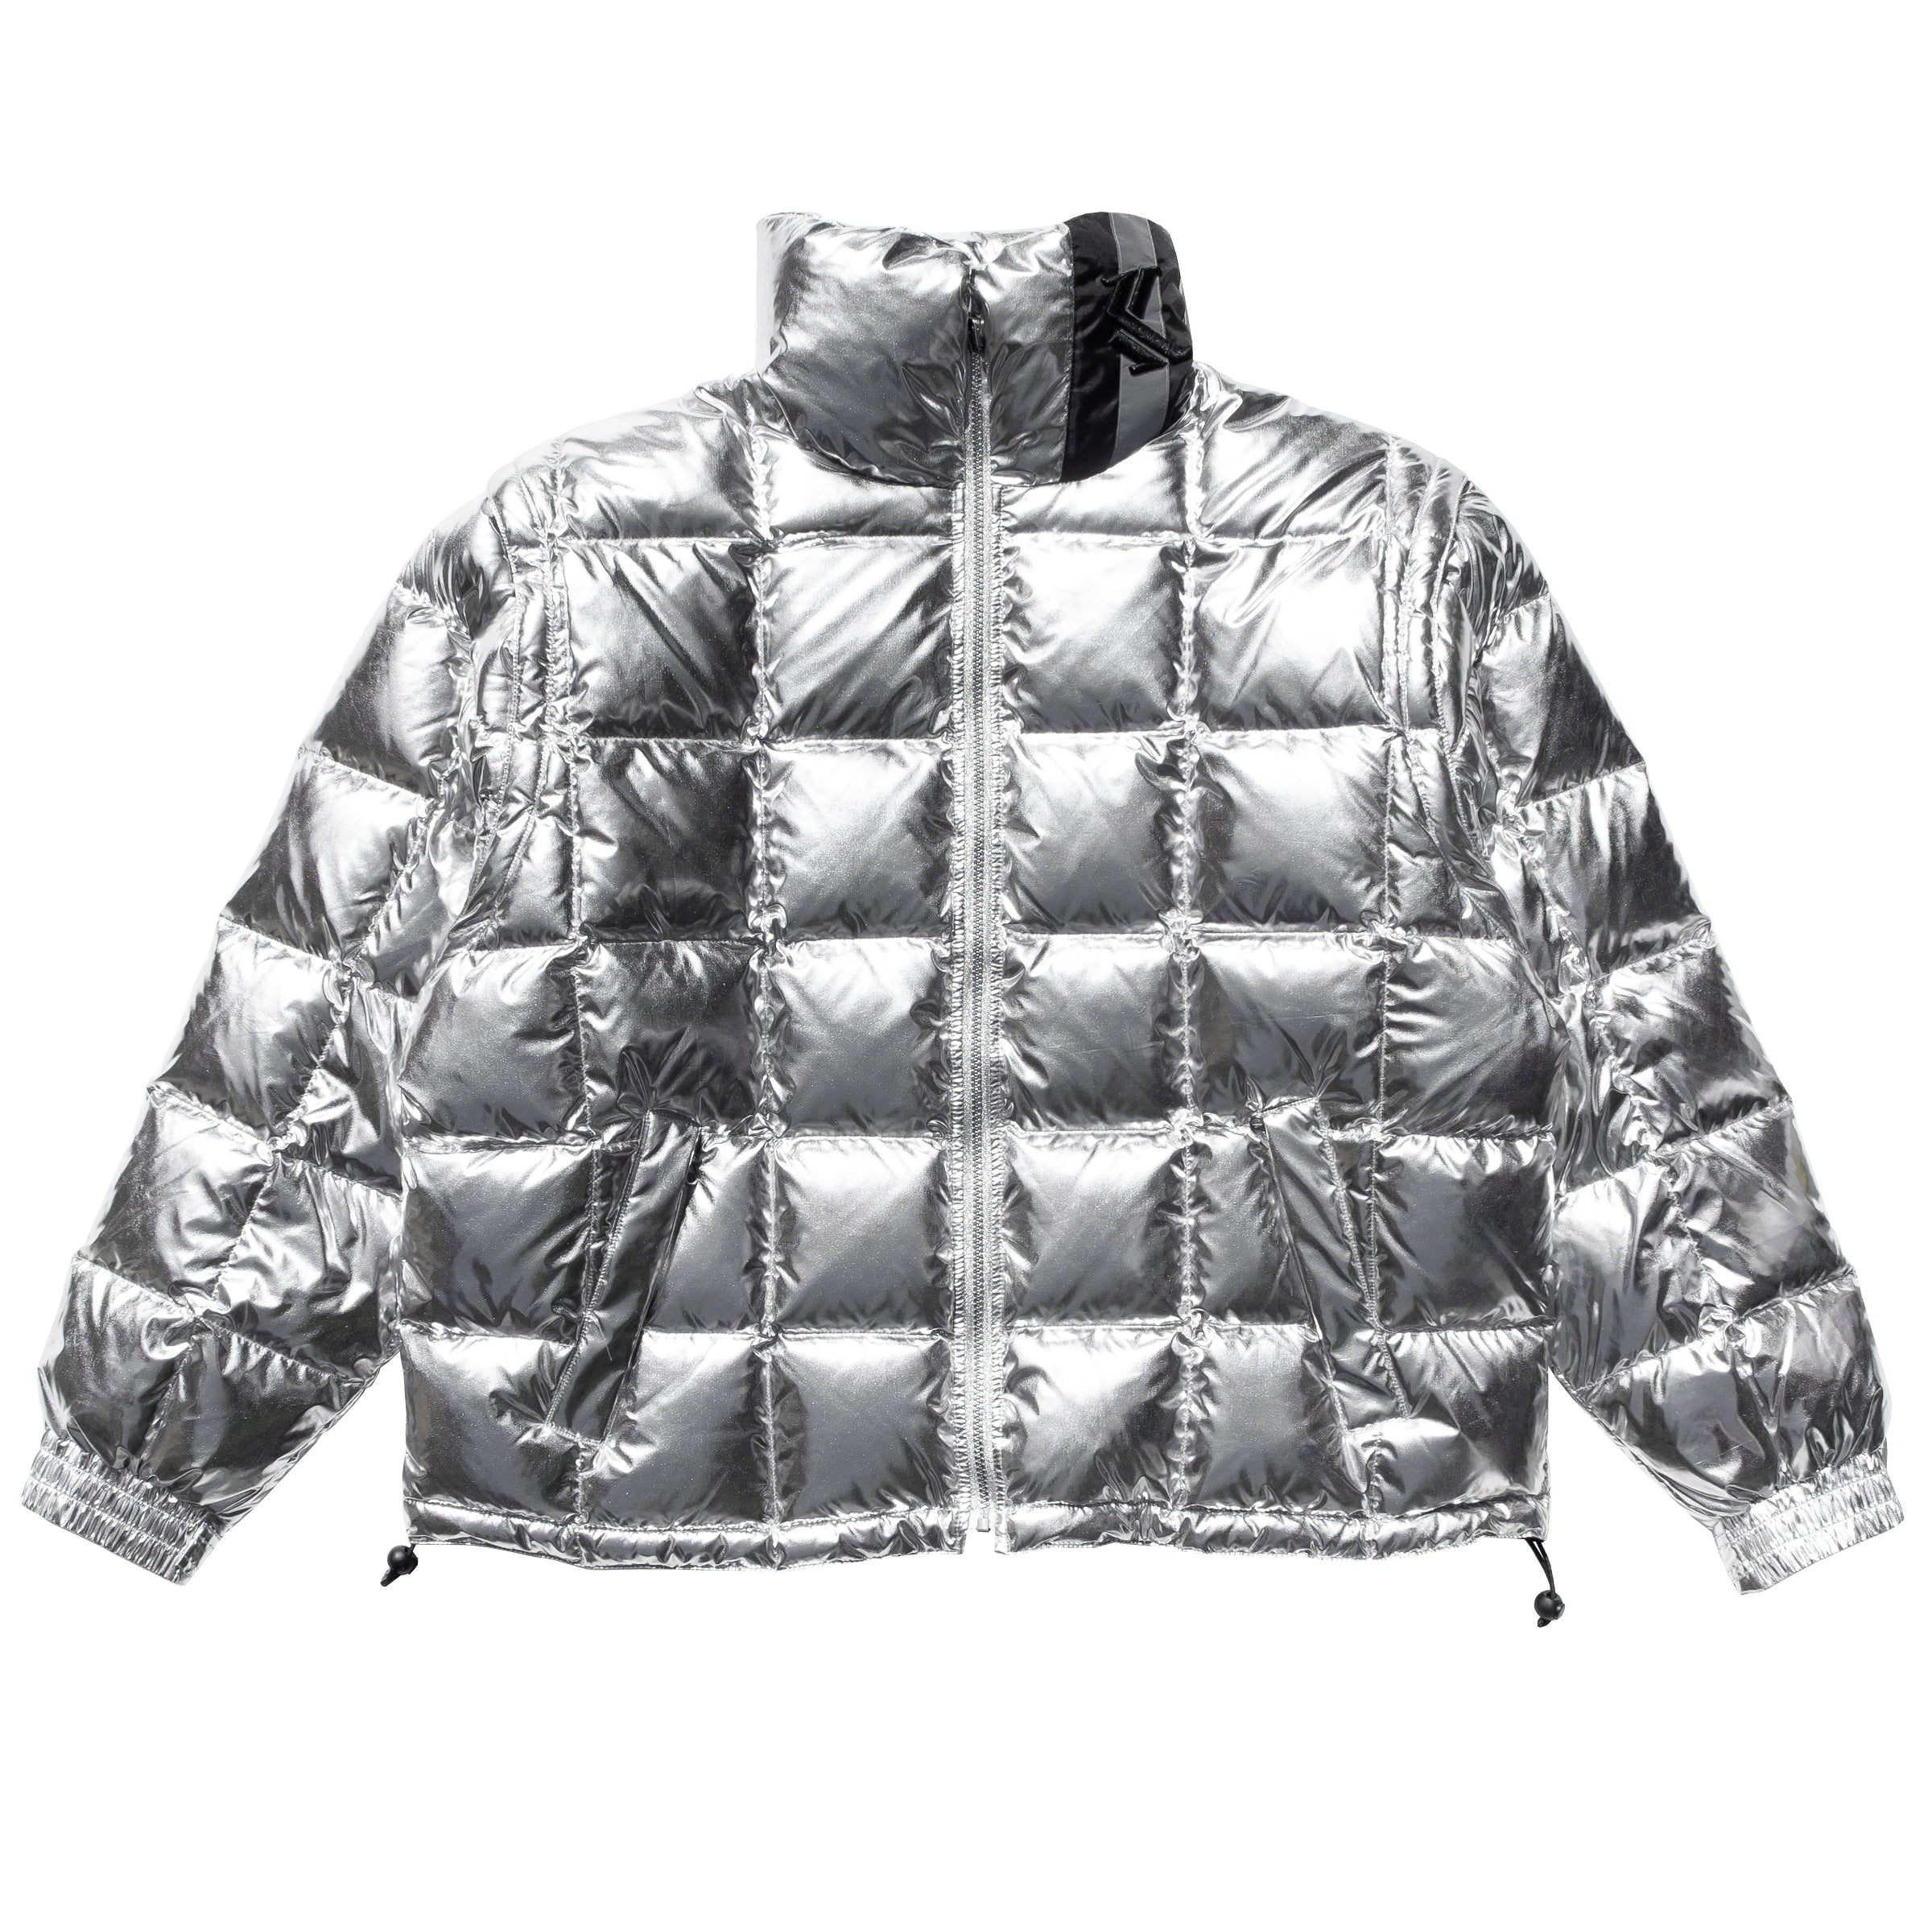 KARL KANI BUBBLE INSULATED JACKET BLACK SILVER REVERSIBLE COAT MENS OUTERWEAR